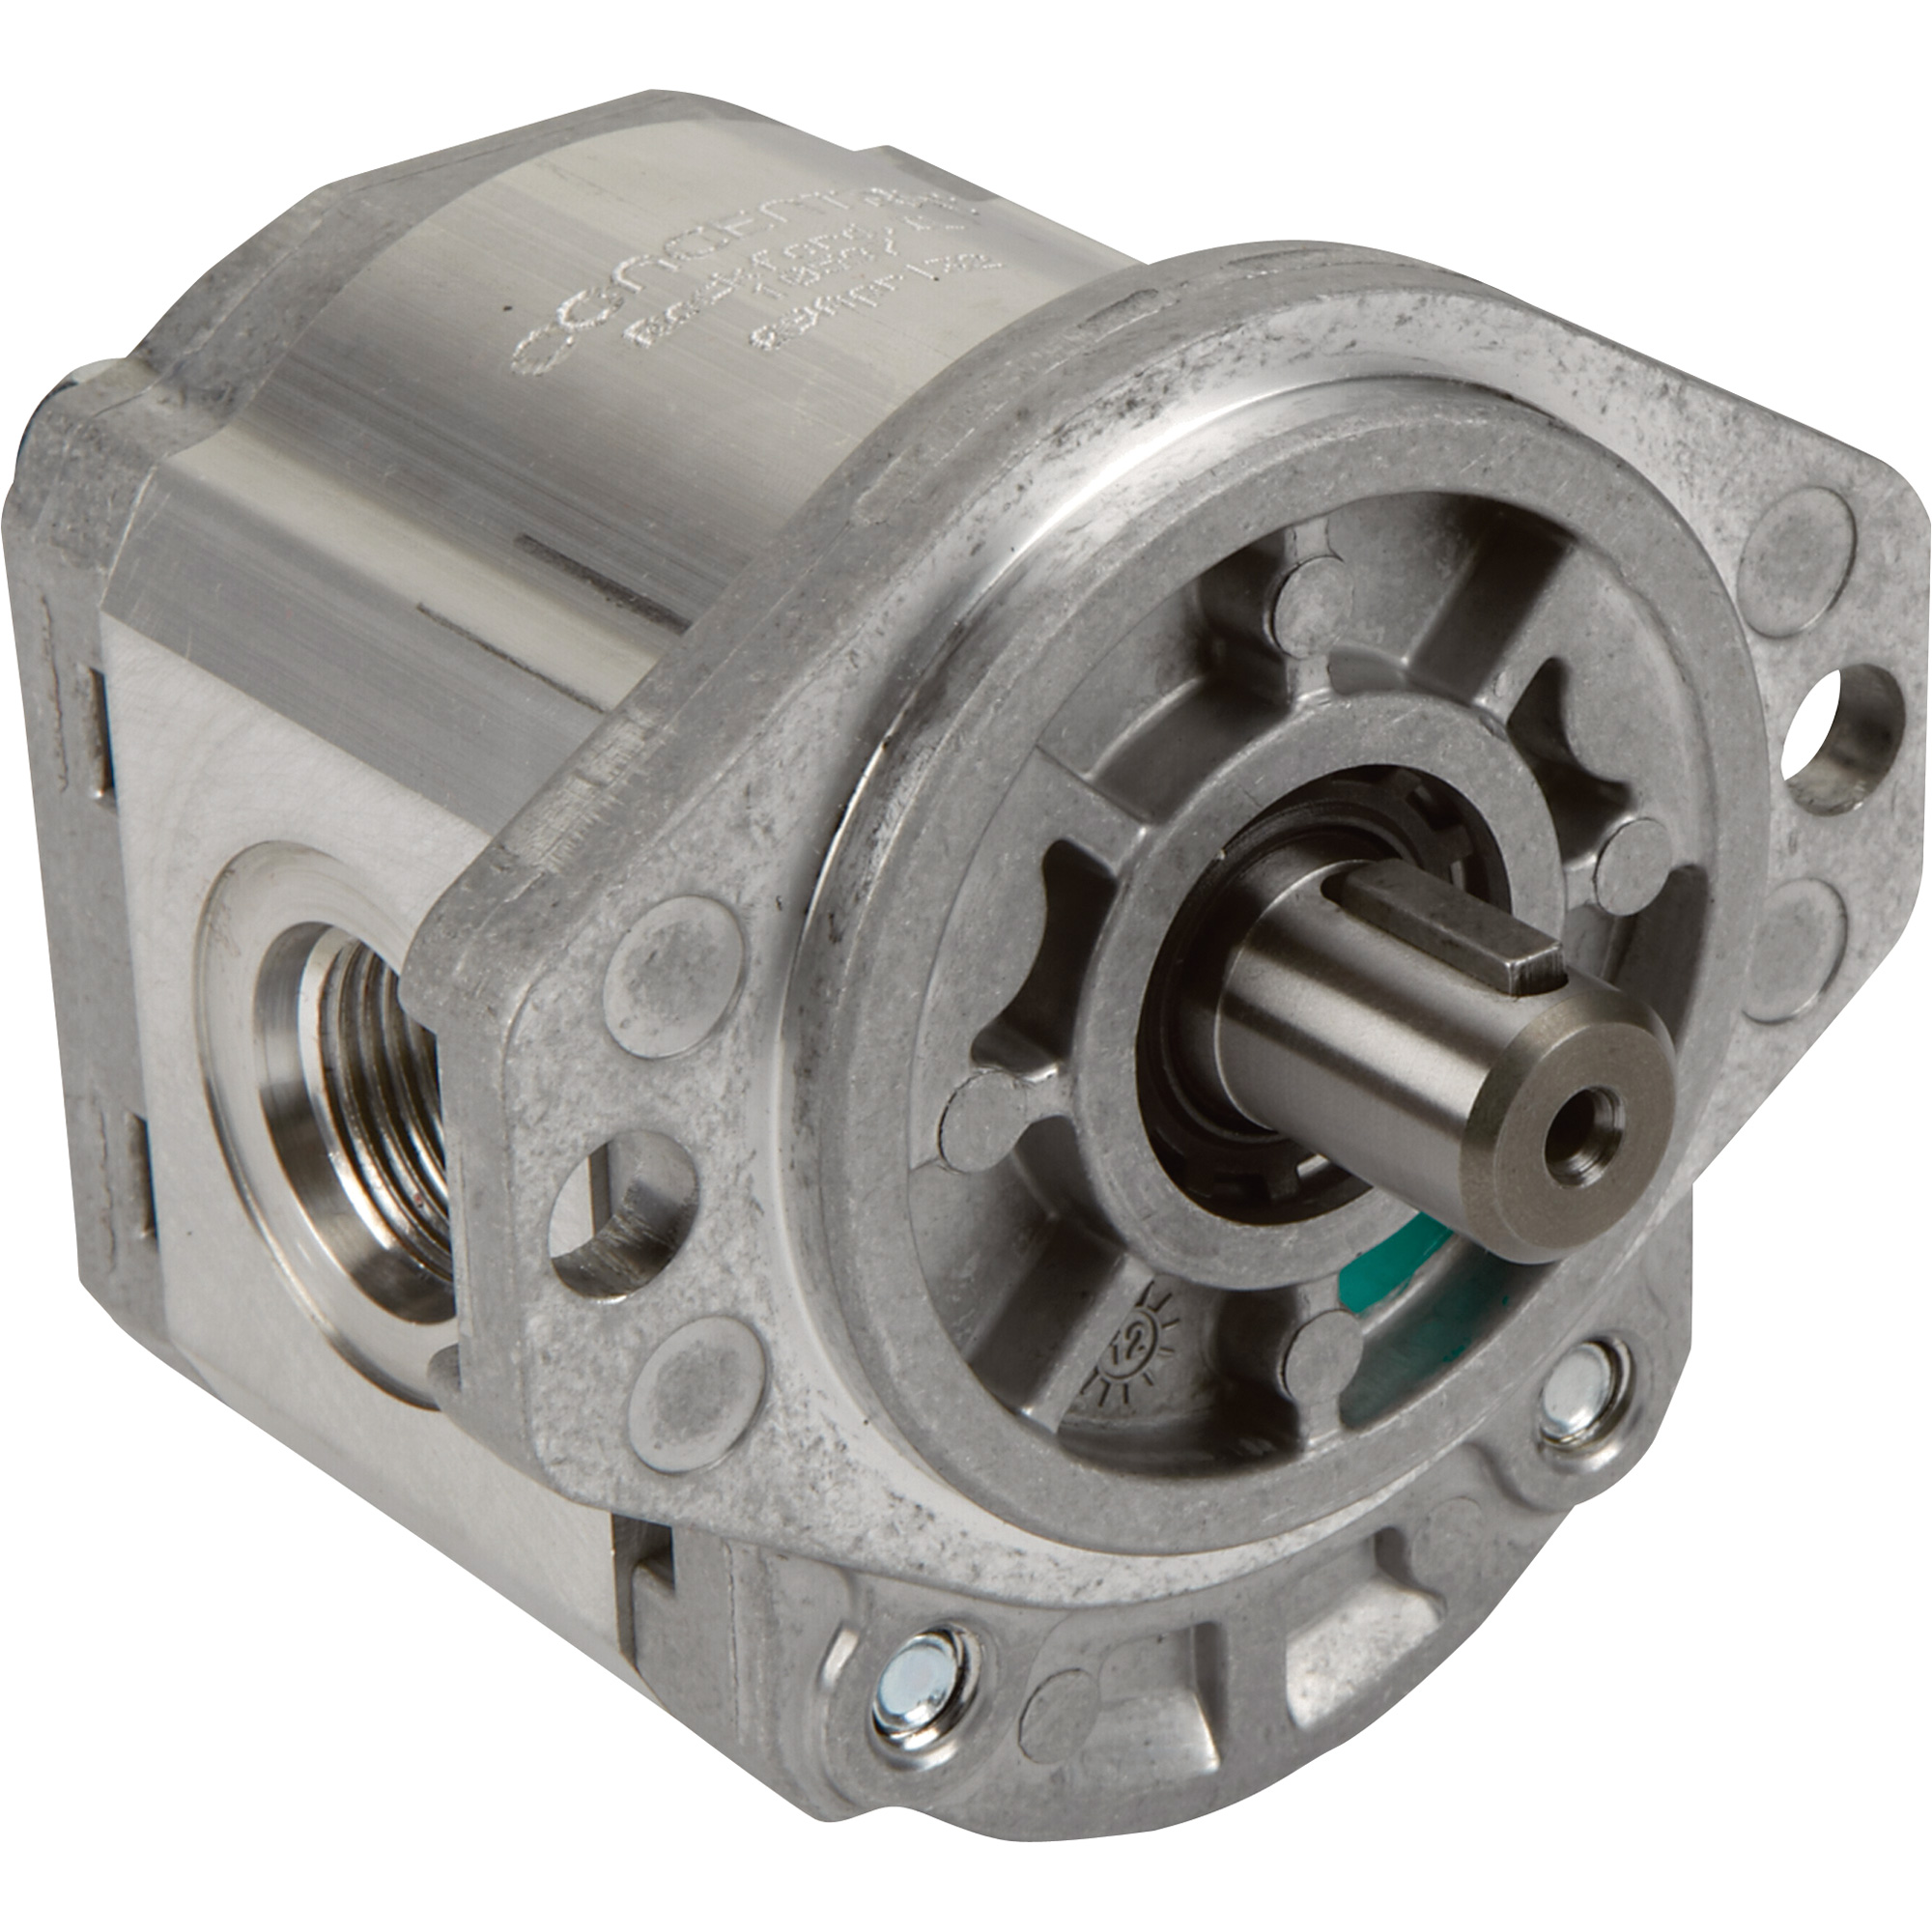 Concentric hydraulic birotational gear motor 4 000 psi for Hydraulic motor low rpm